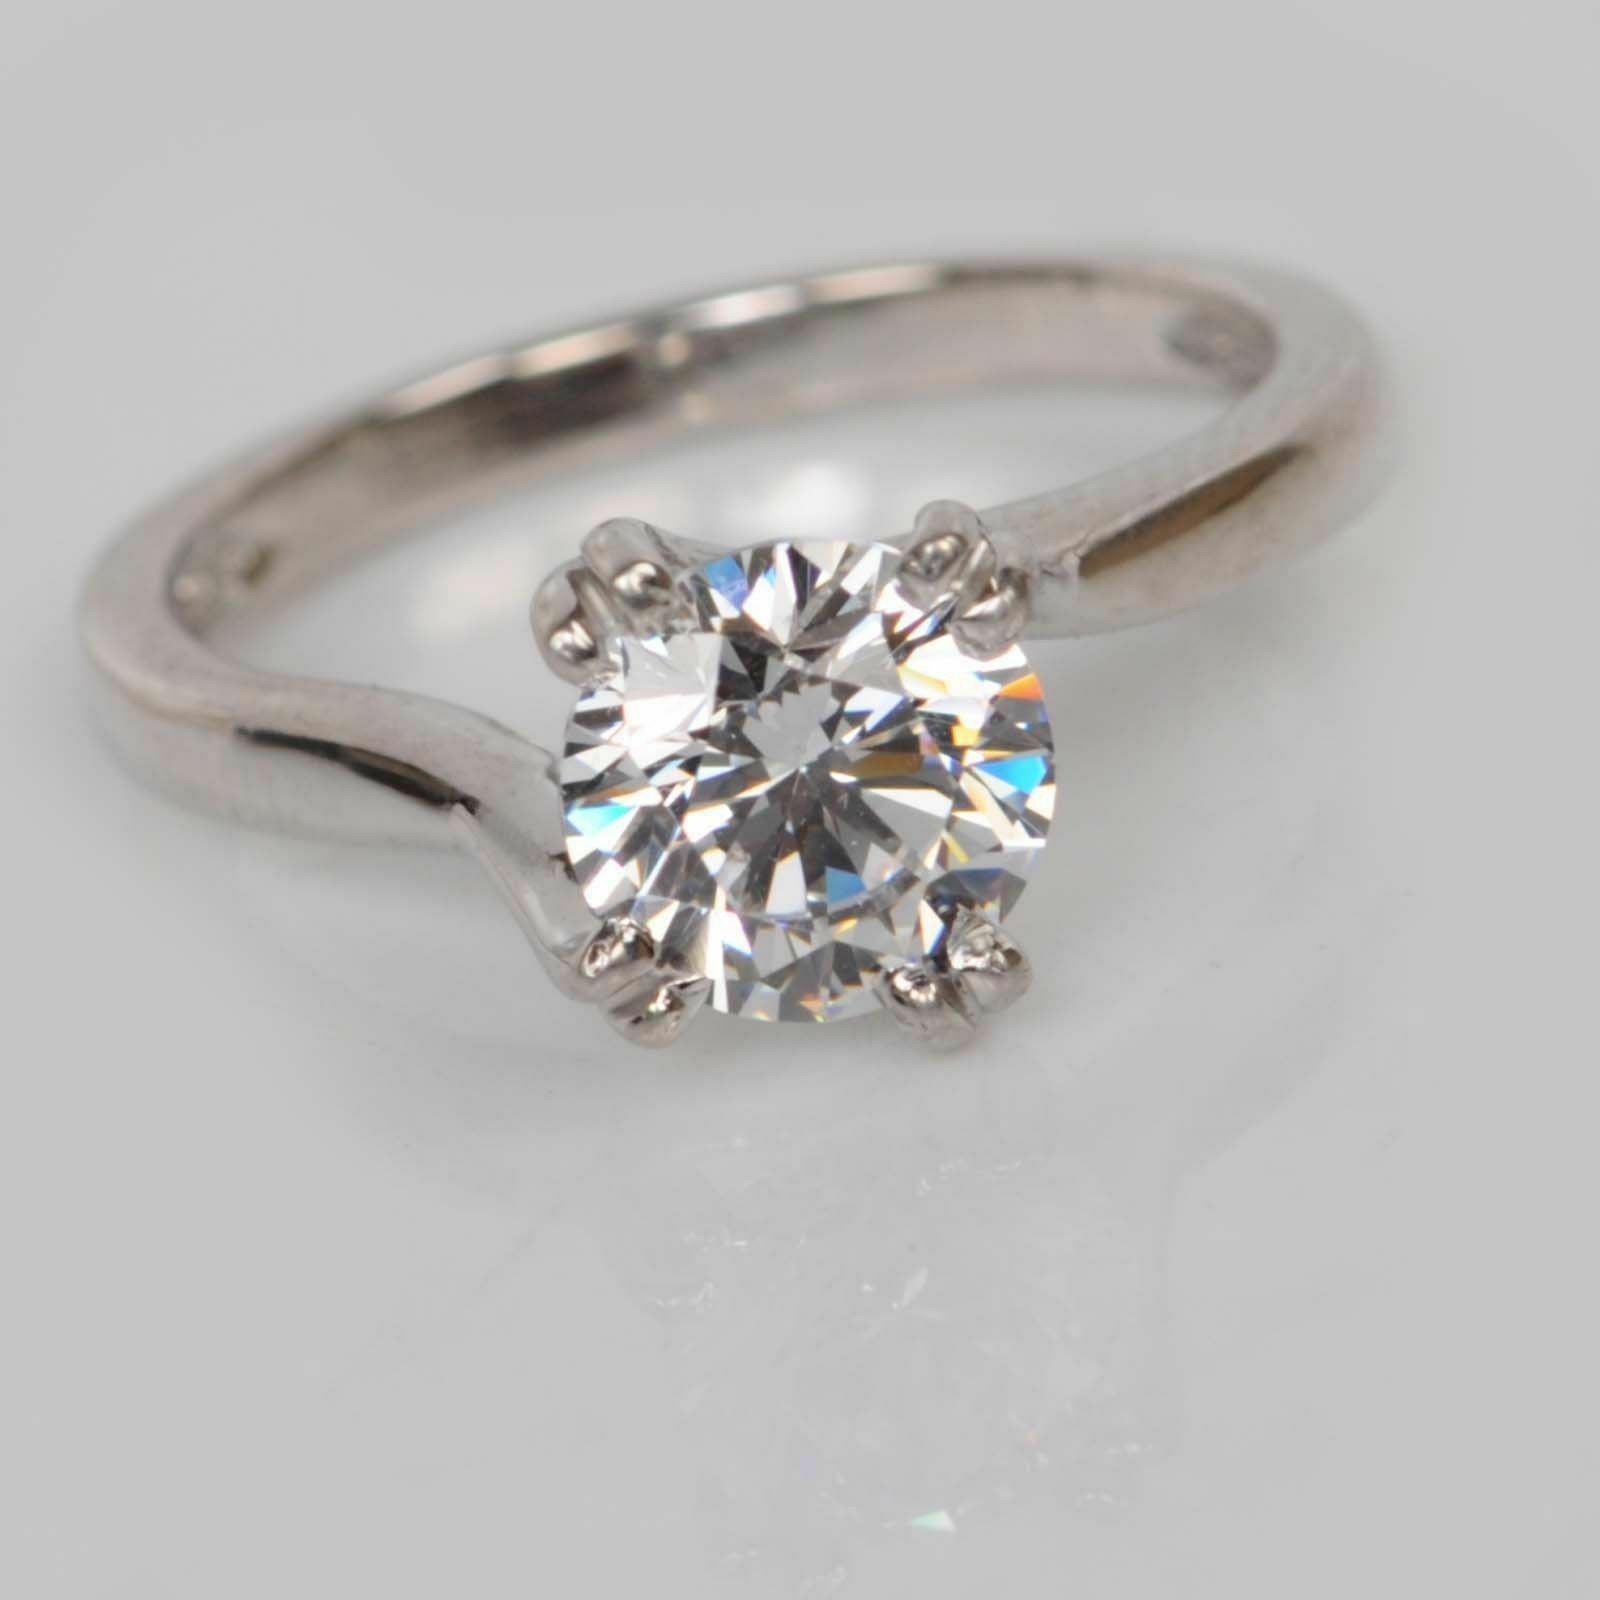 2 Ct Bridal Moissanite Engagement Ring Round Cut Real 14K White gold Size 6 9 HJ